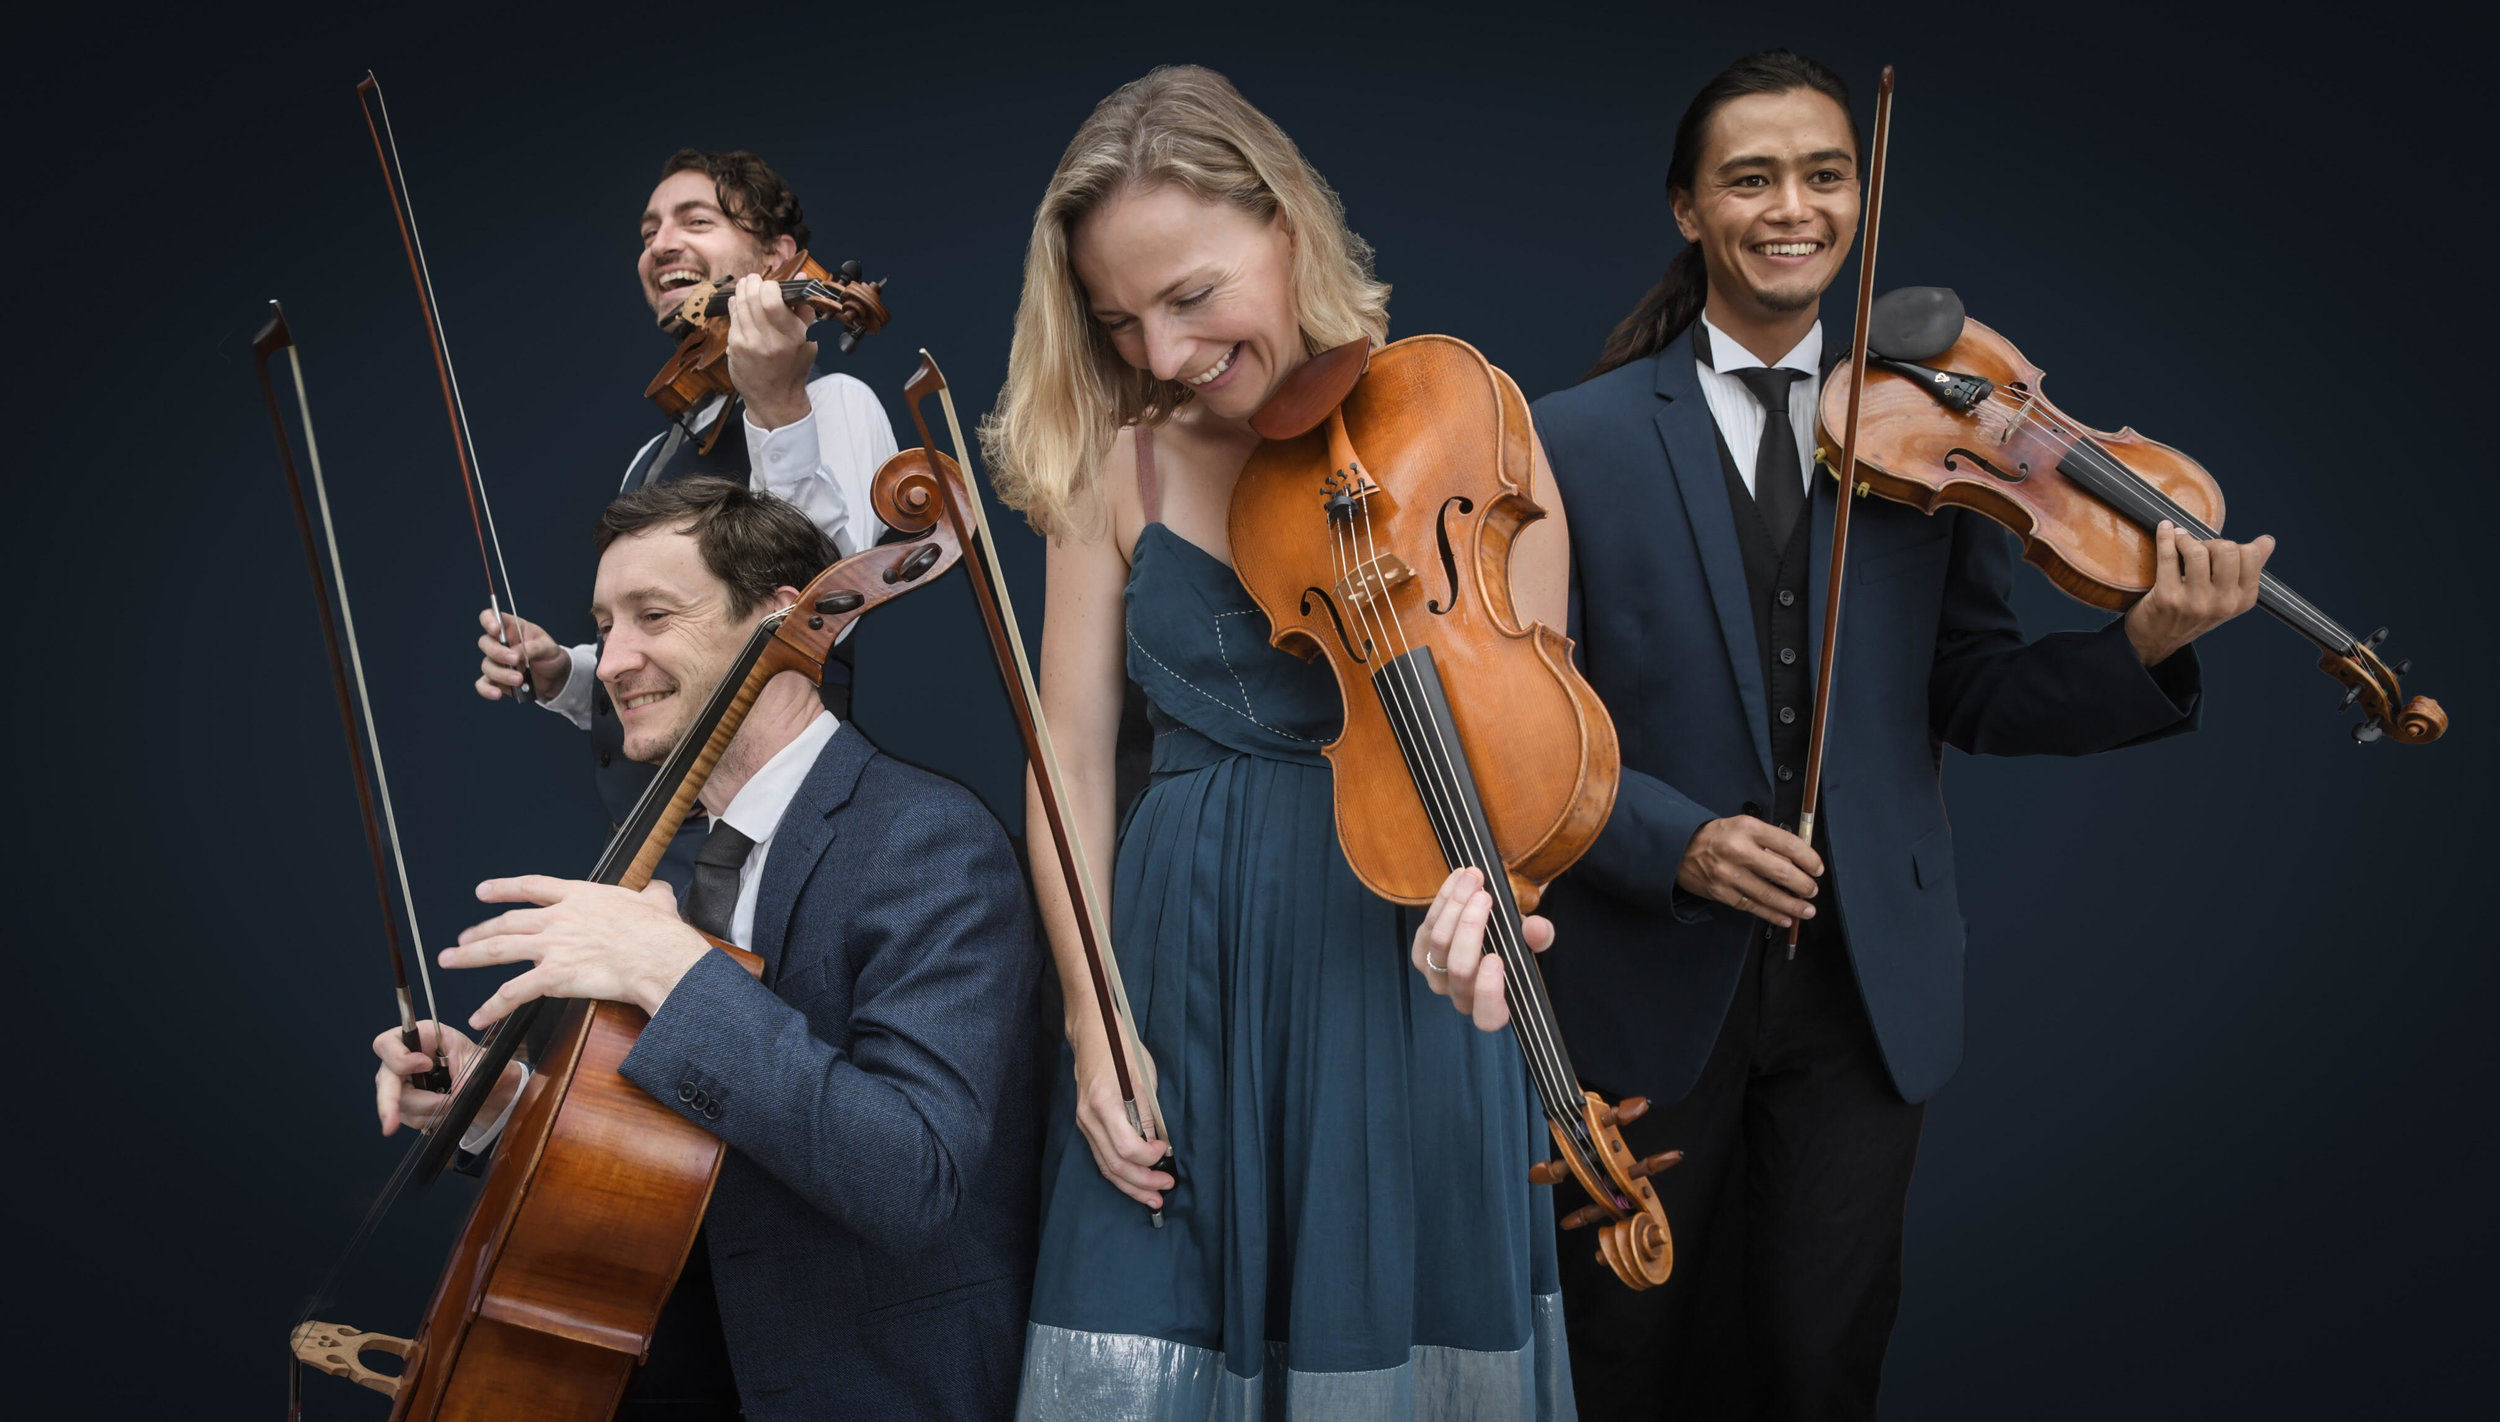 The Canberra Times - Phoenix Quartet musically ponders Love, Life & Death  Feb 2019